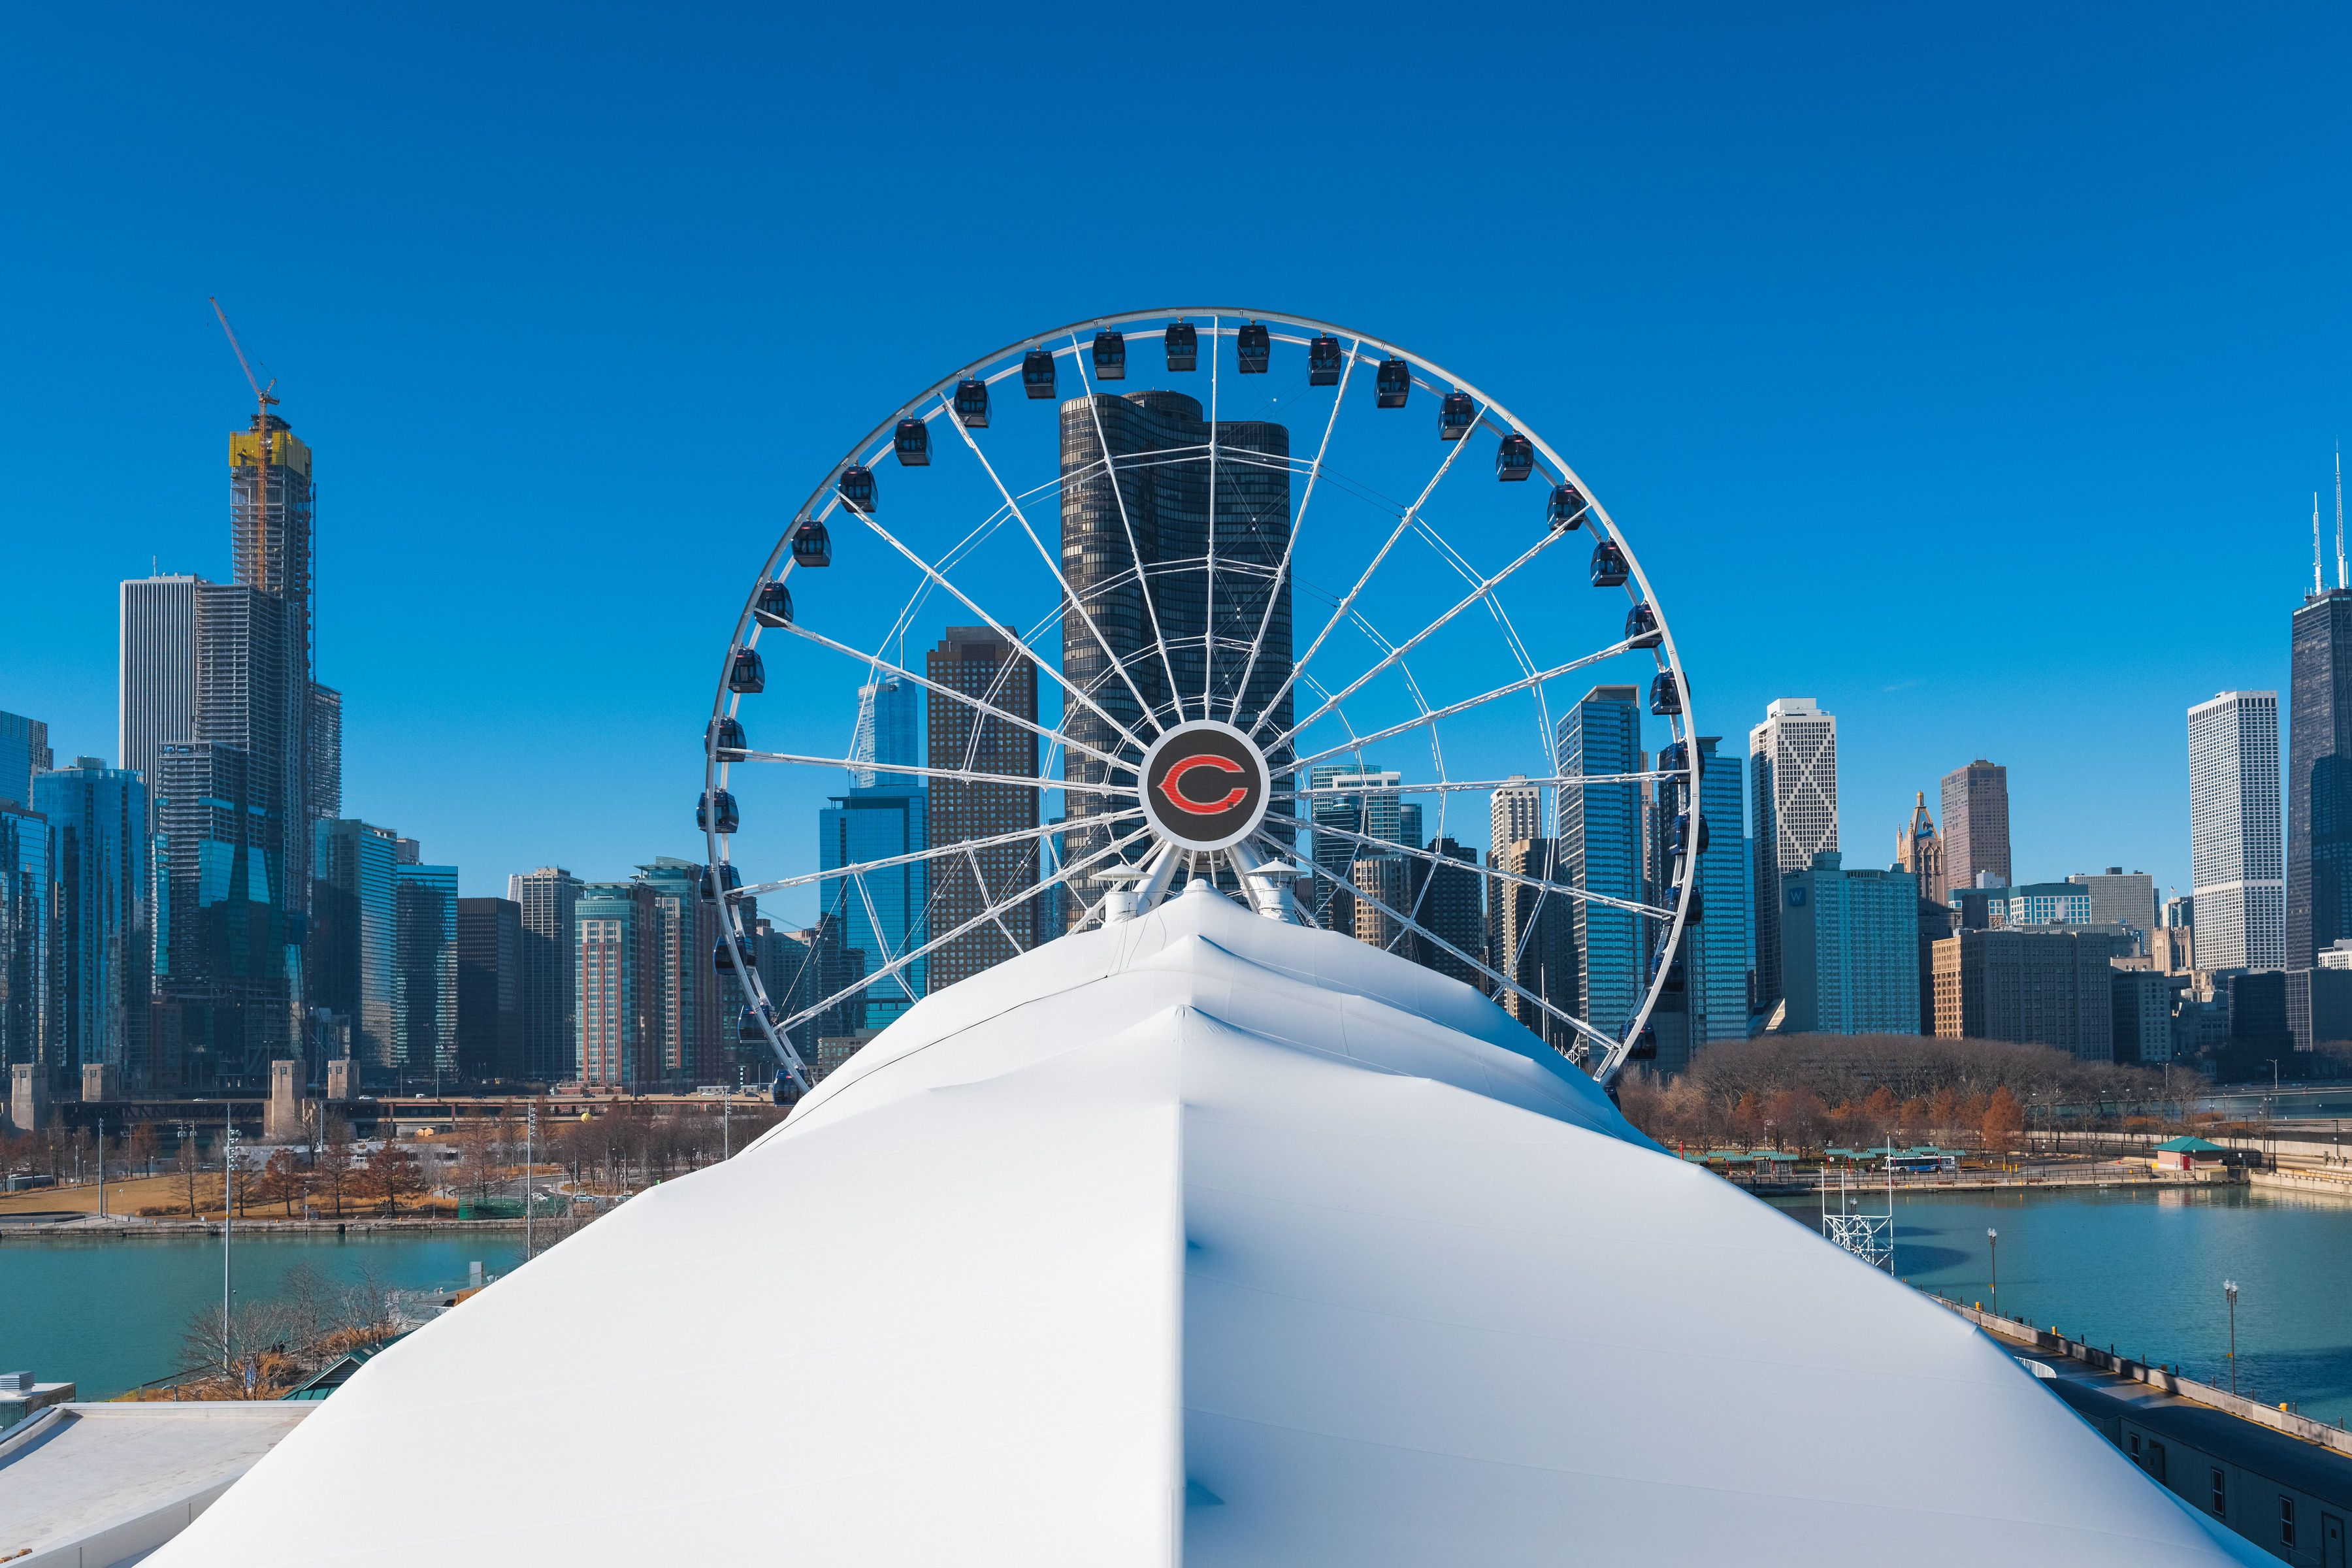 head on view of the Navy Pier ferris wheel with the skyline in the background